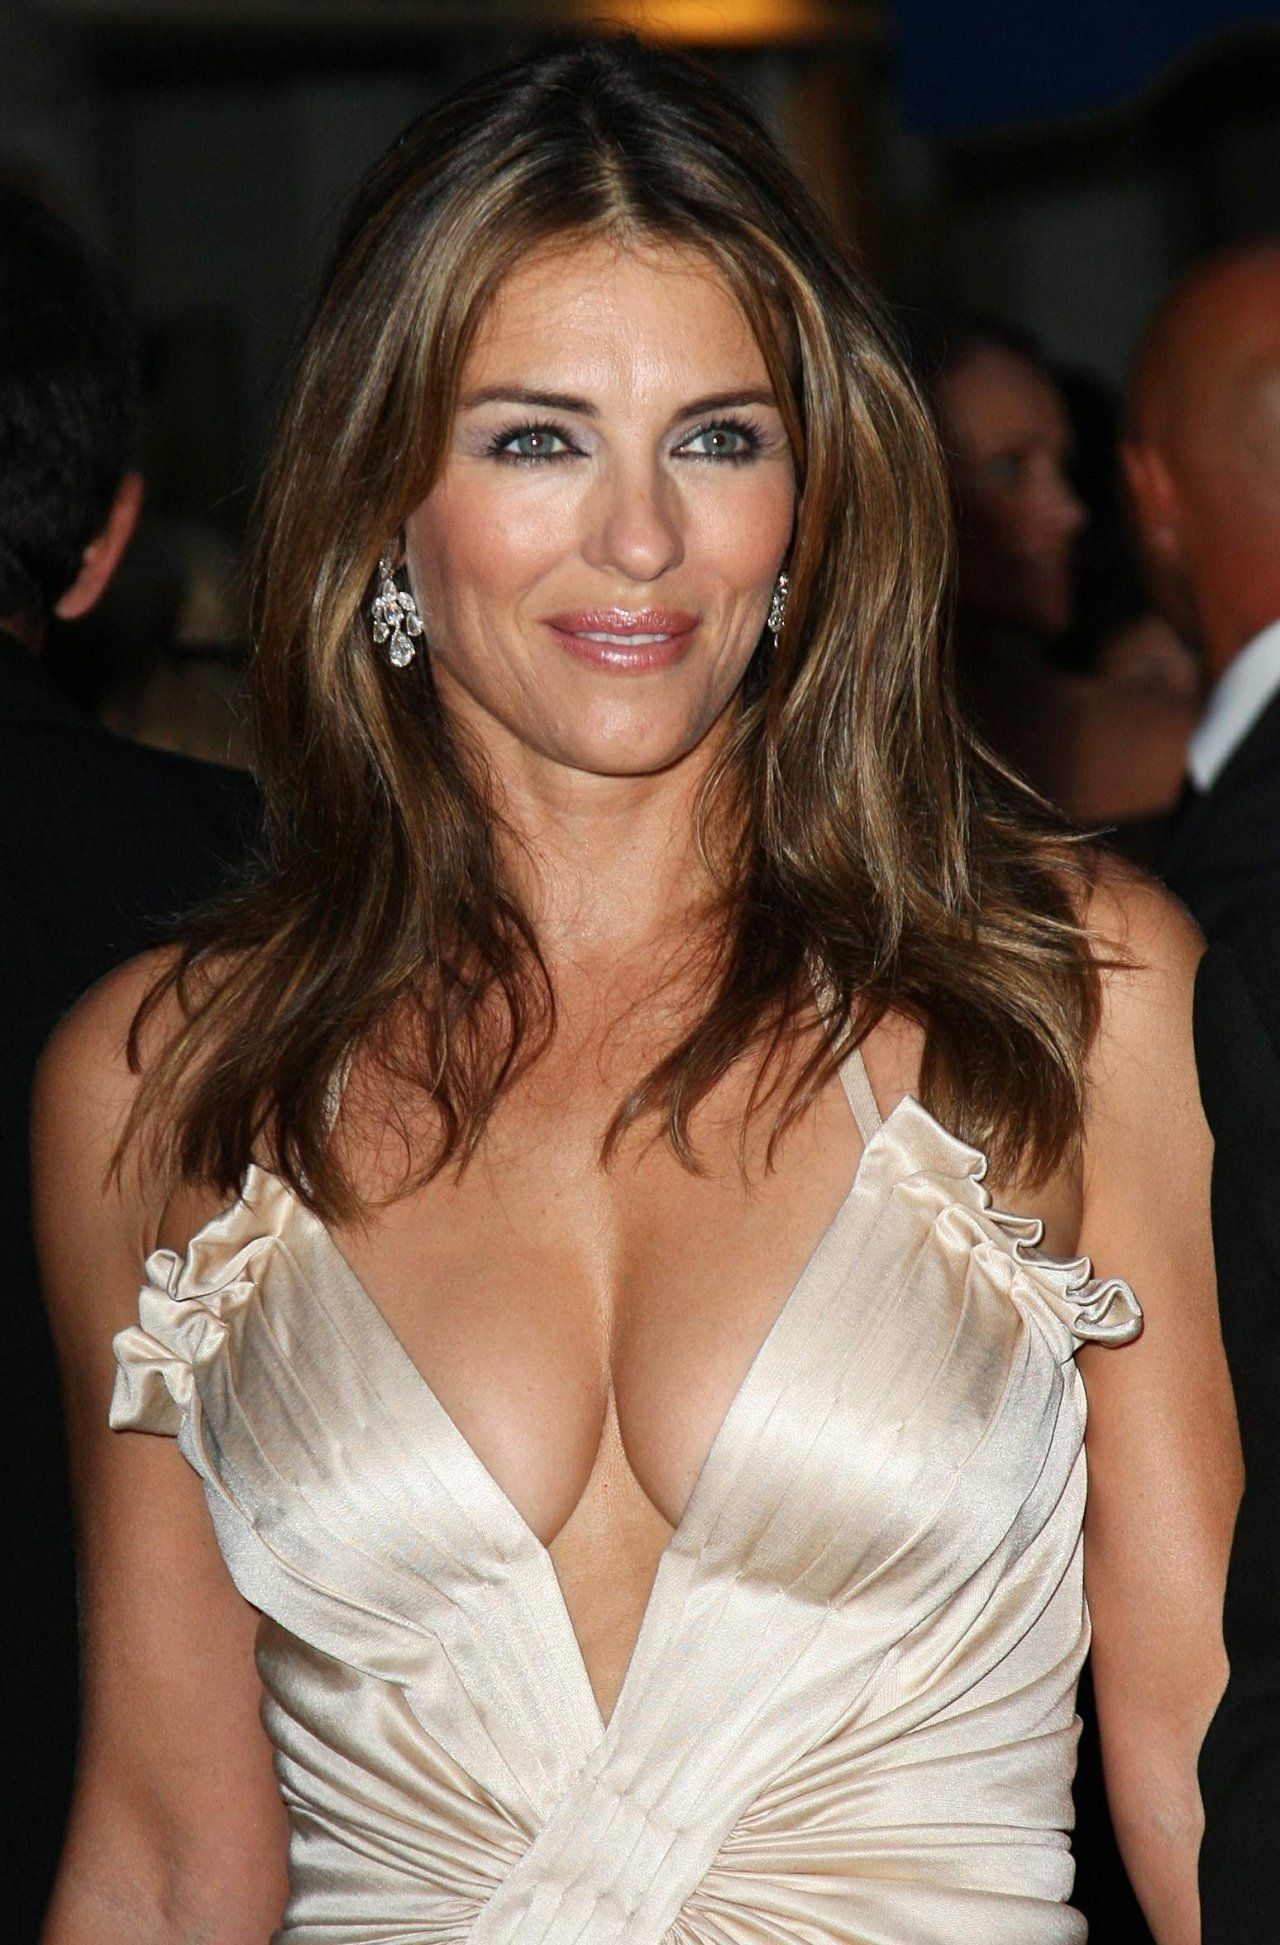 Forum on this topic: Dancing on ice betting odds this weeks odds to win, topless-photos-of-elizabeth-hurley-2018-2019-celebrityes/